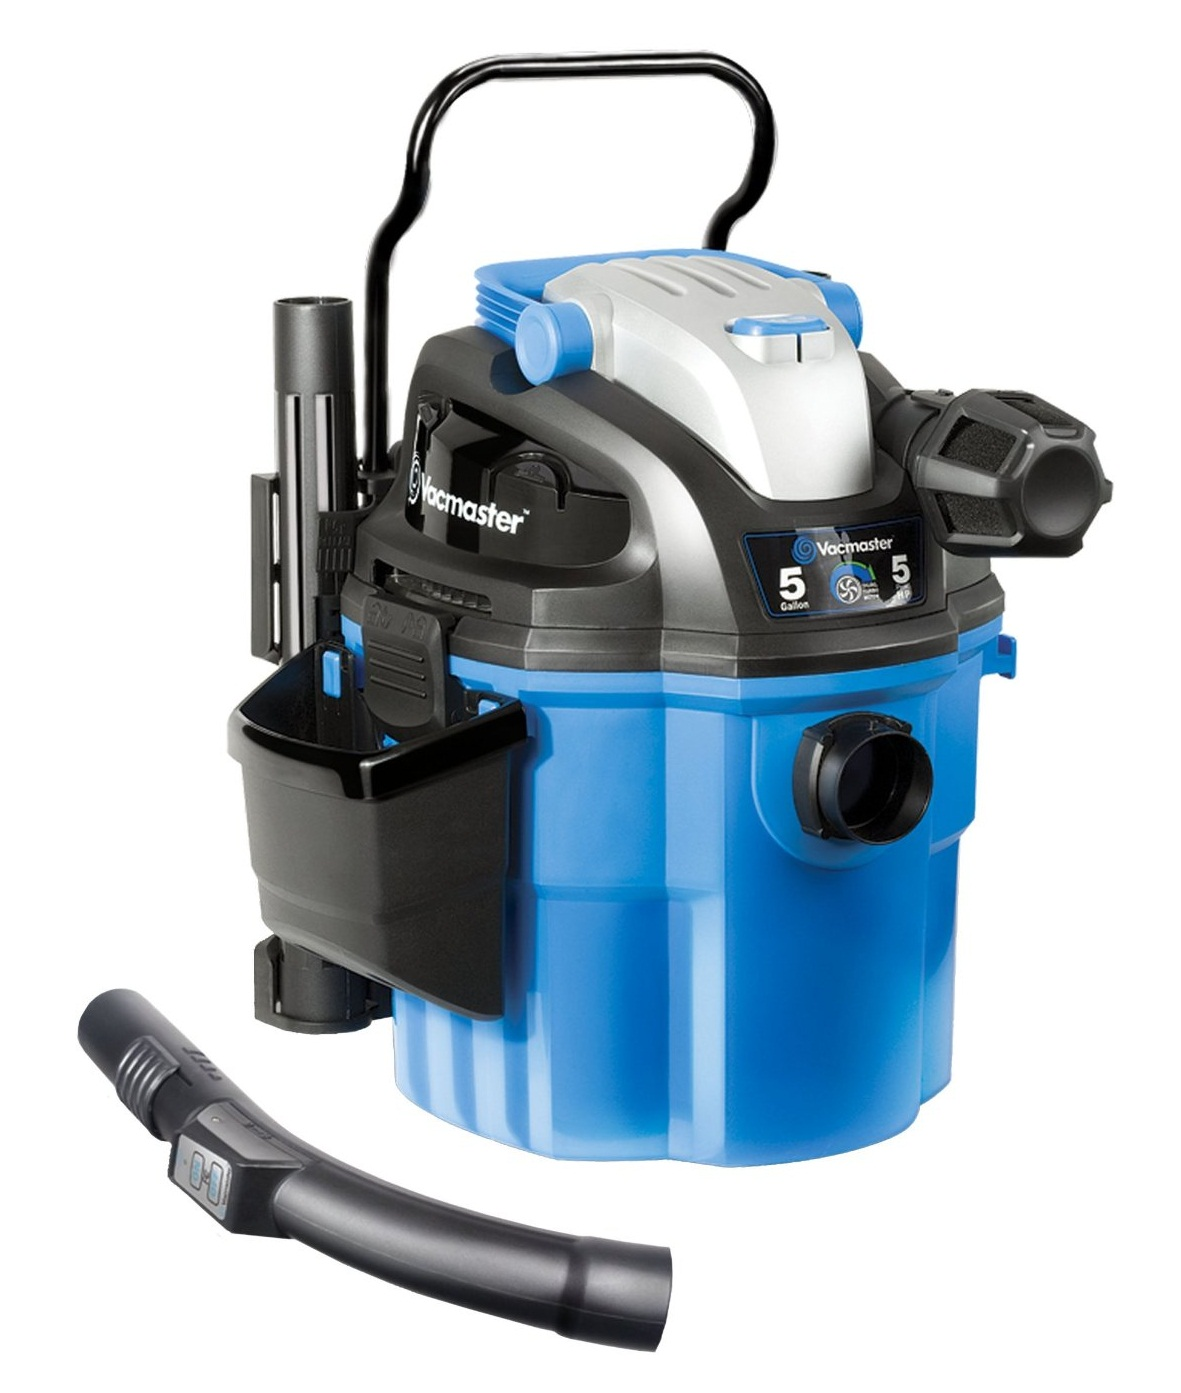 vacmaster-5-gallon5-peak-hp-with-2-stage-motorwetdry-vacuum